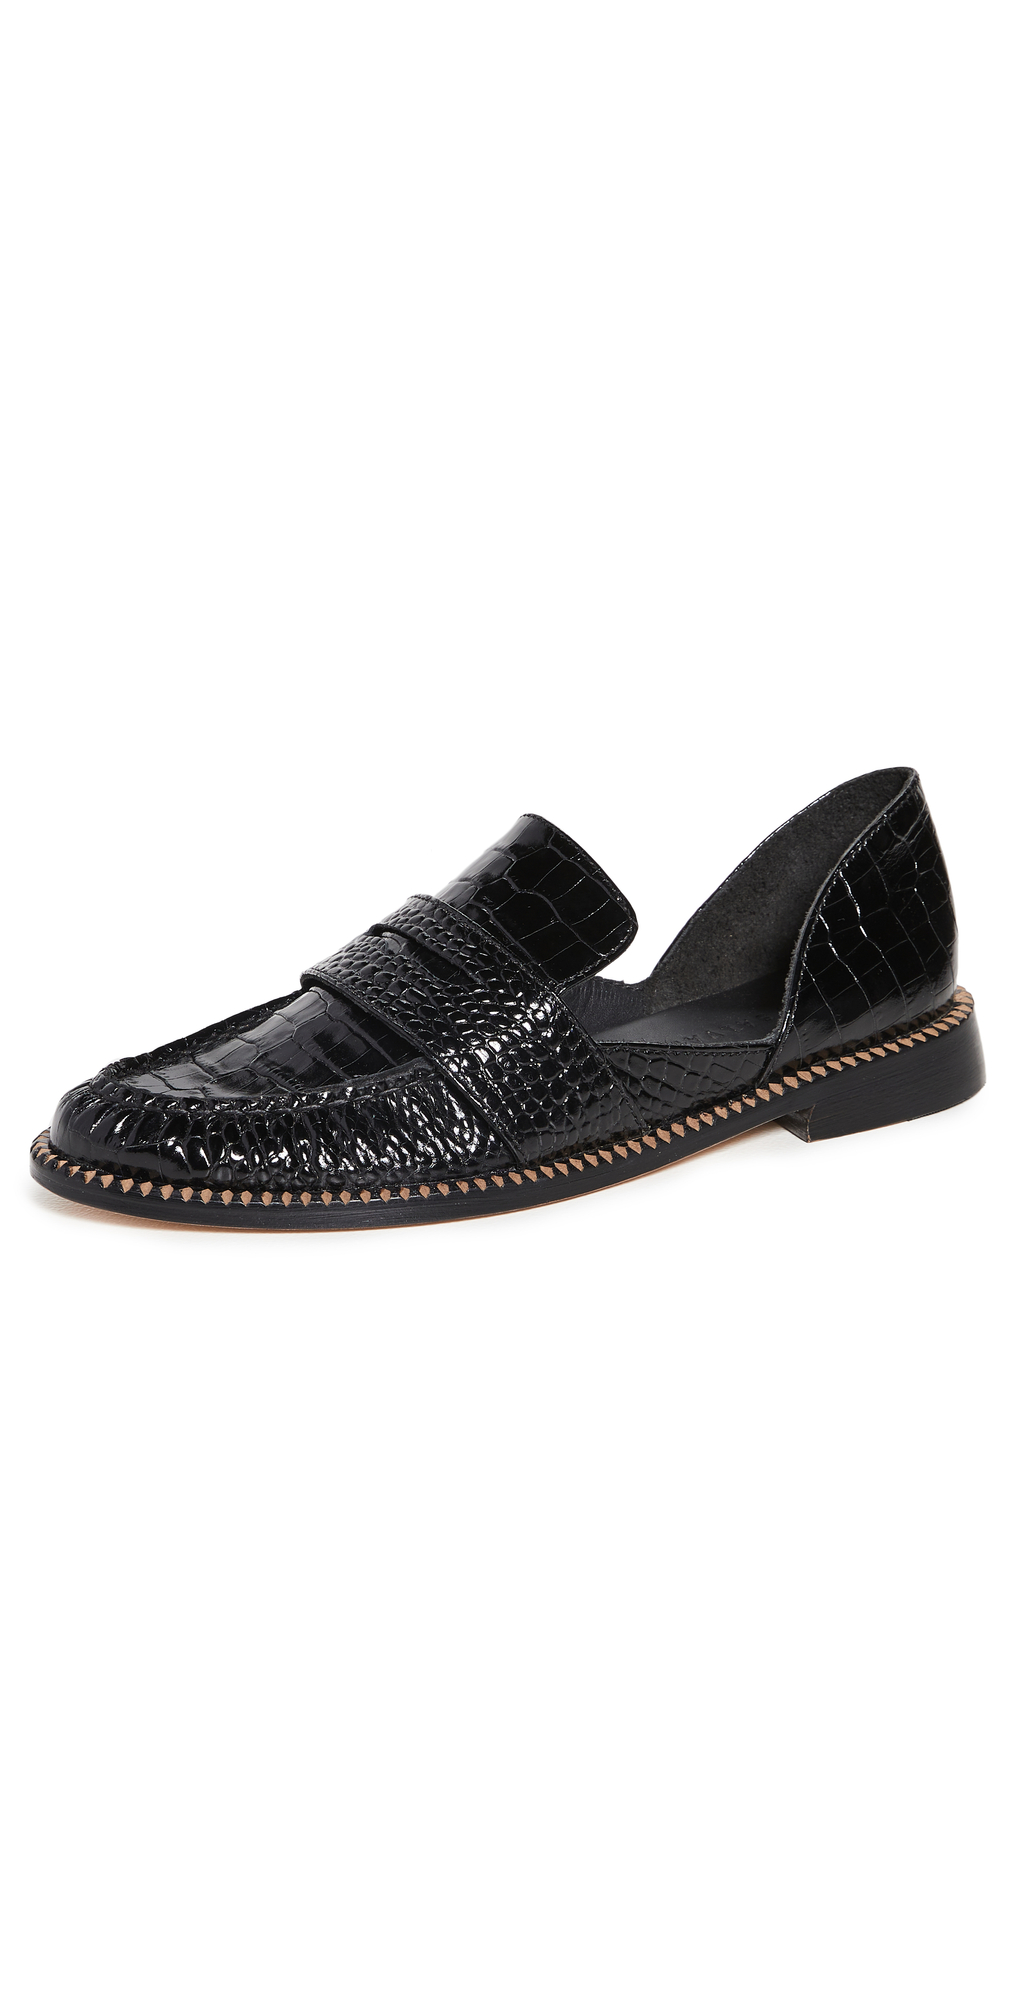 Tash D'orsay Loafers